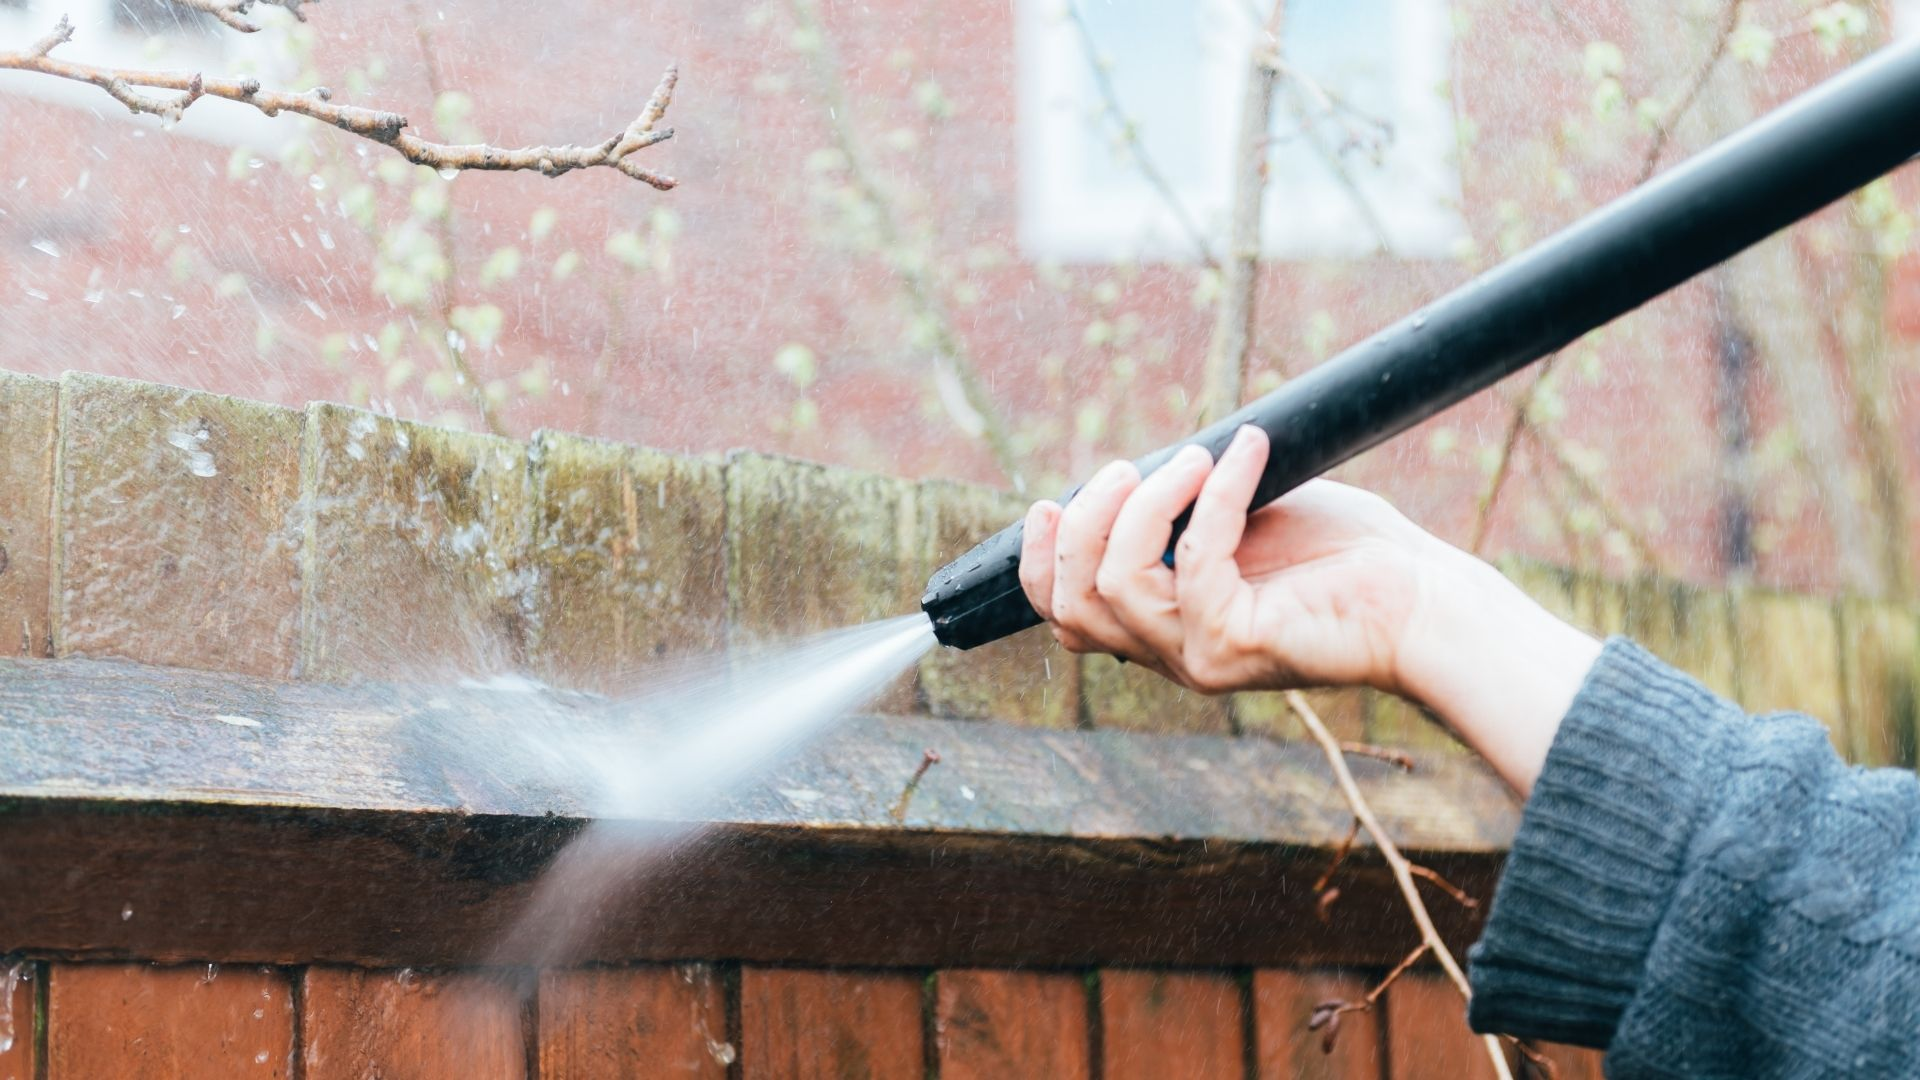 Pressure washing, soft washing, power washing—what are the differences?